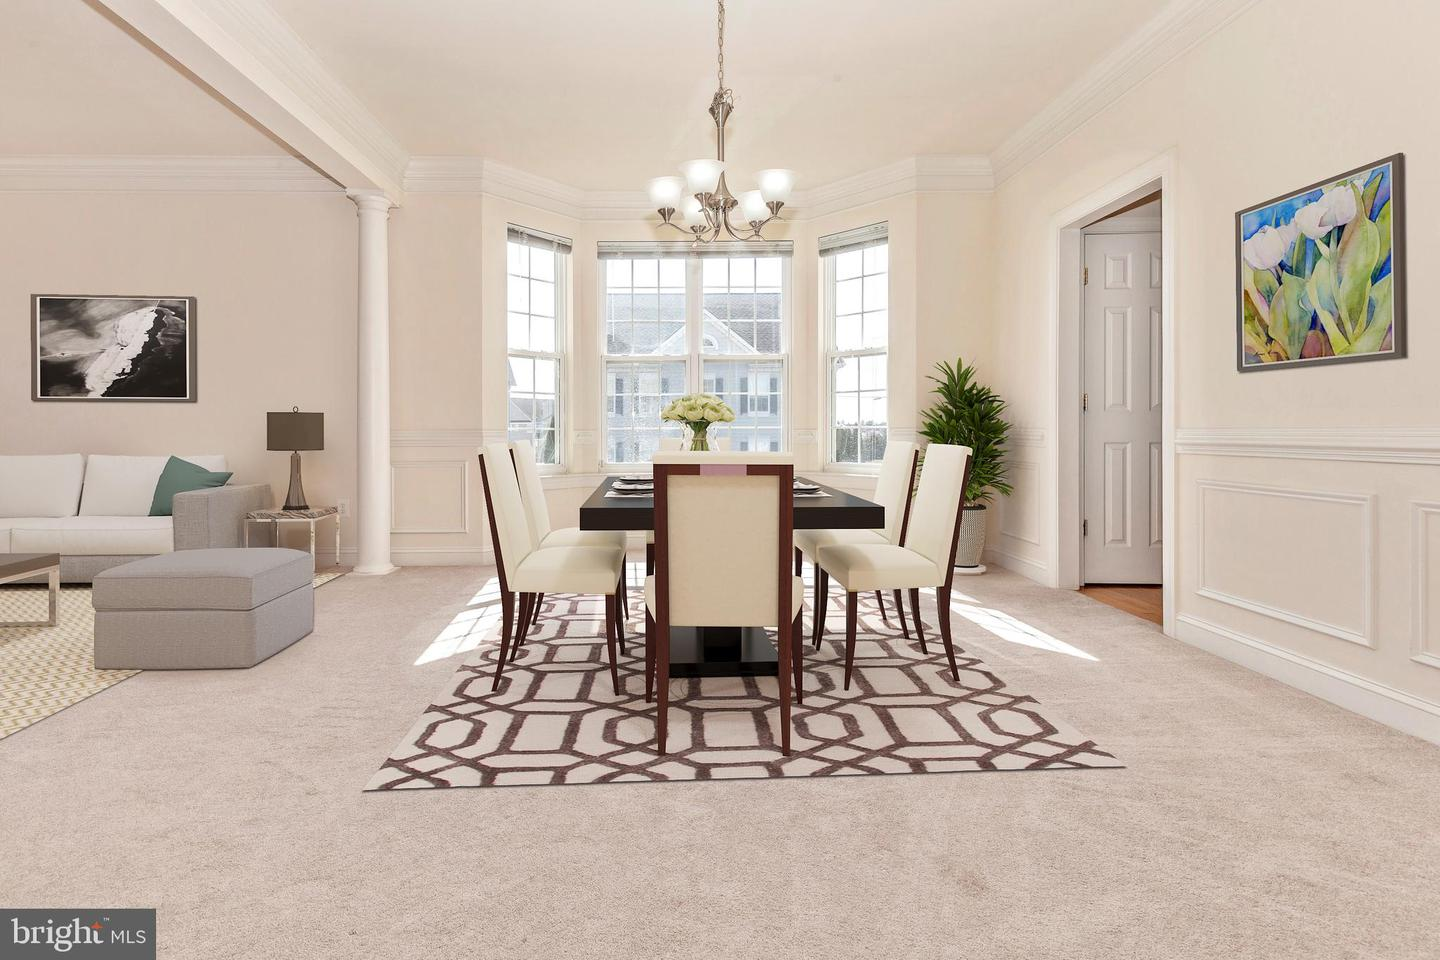 Additional photo for property listing at 500 Plummer St New Market, Maryland 21774 United States